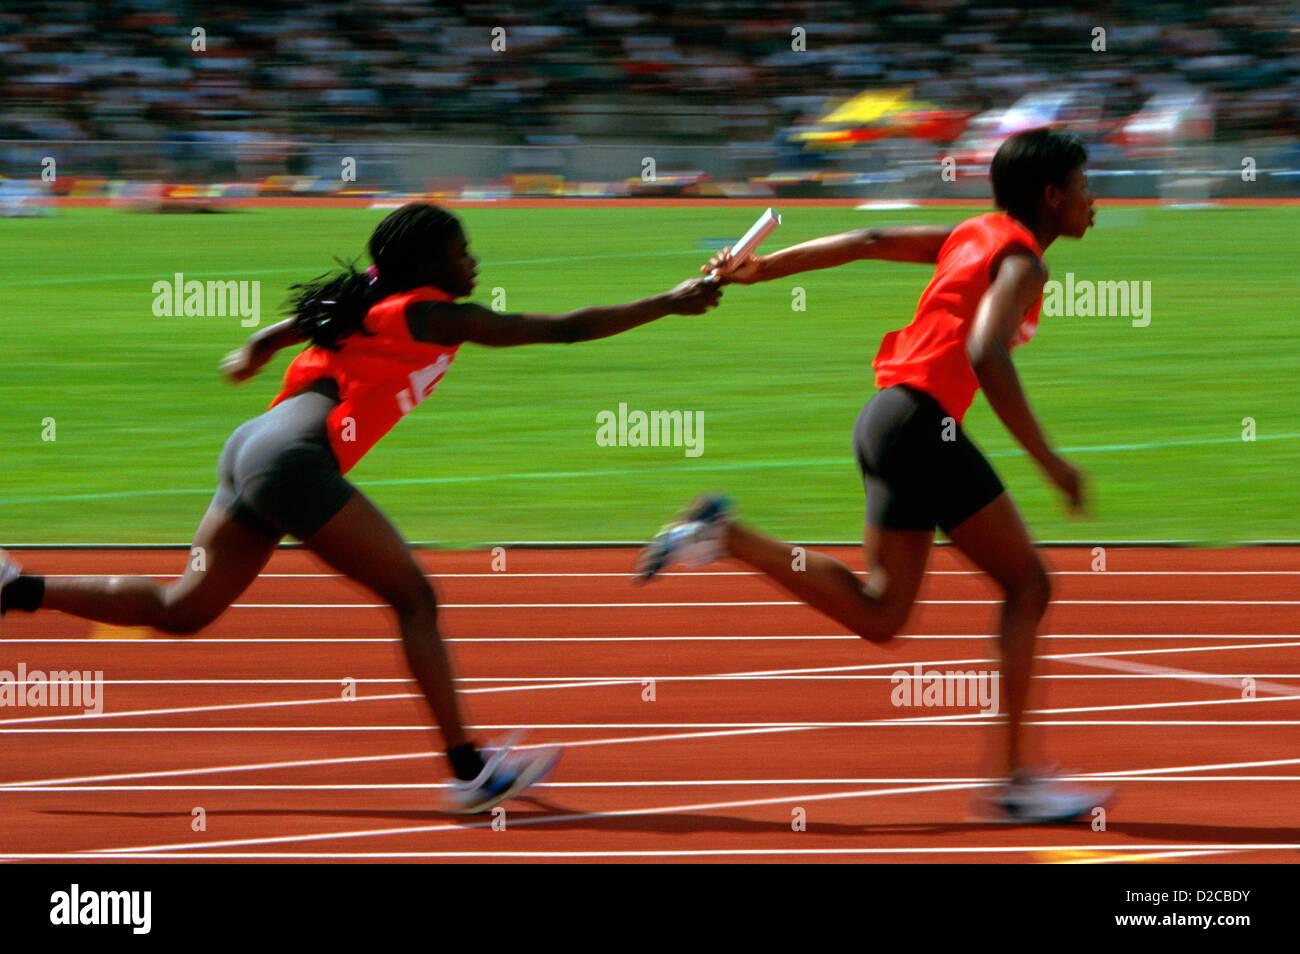 Track & Field. Runners In A Relay Race, Passing Baton - Stock Image